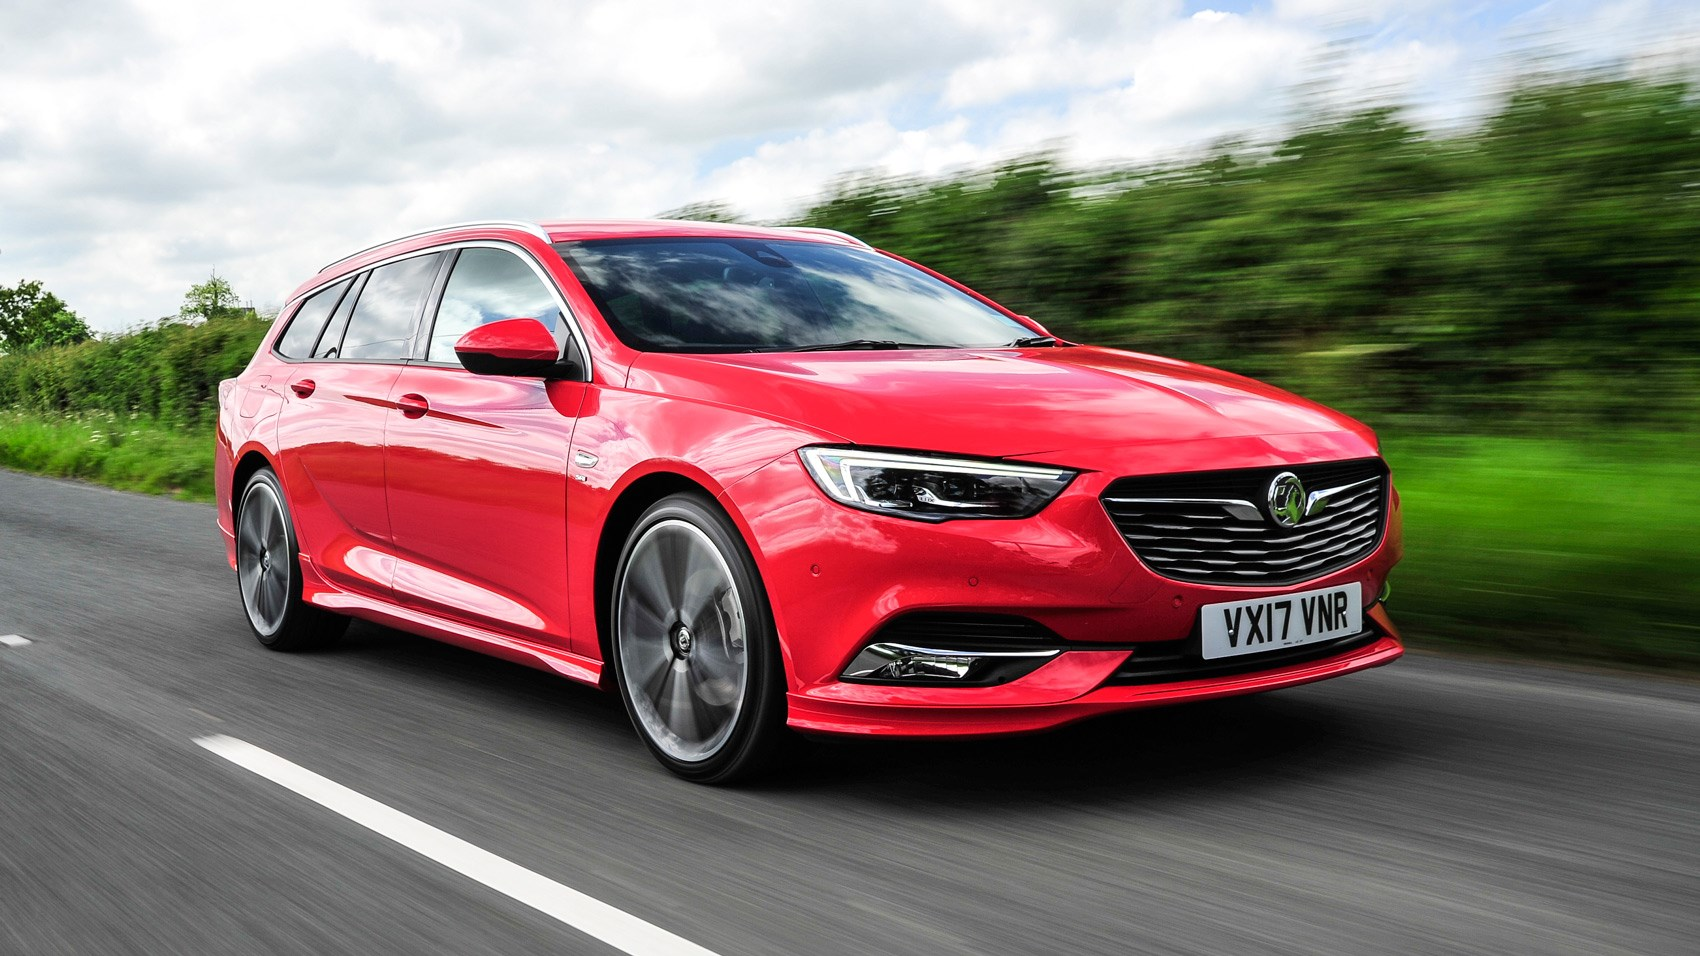 vauxhall insignia sports tourer 2017 review car magazine. Black Bedroom Furniture Sets. Home Design Ideas